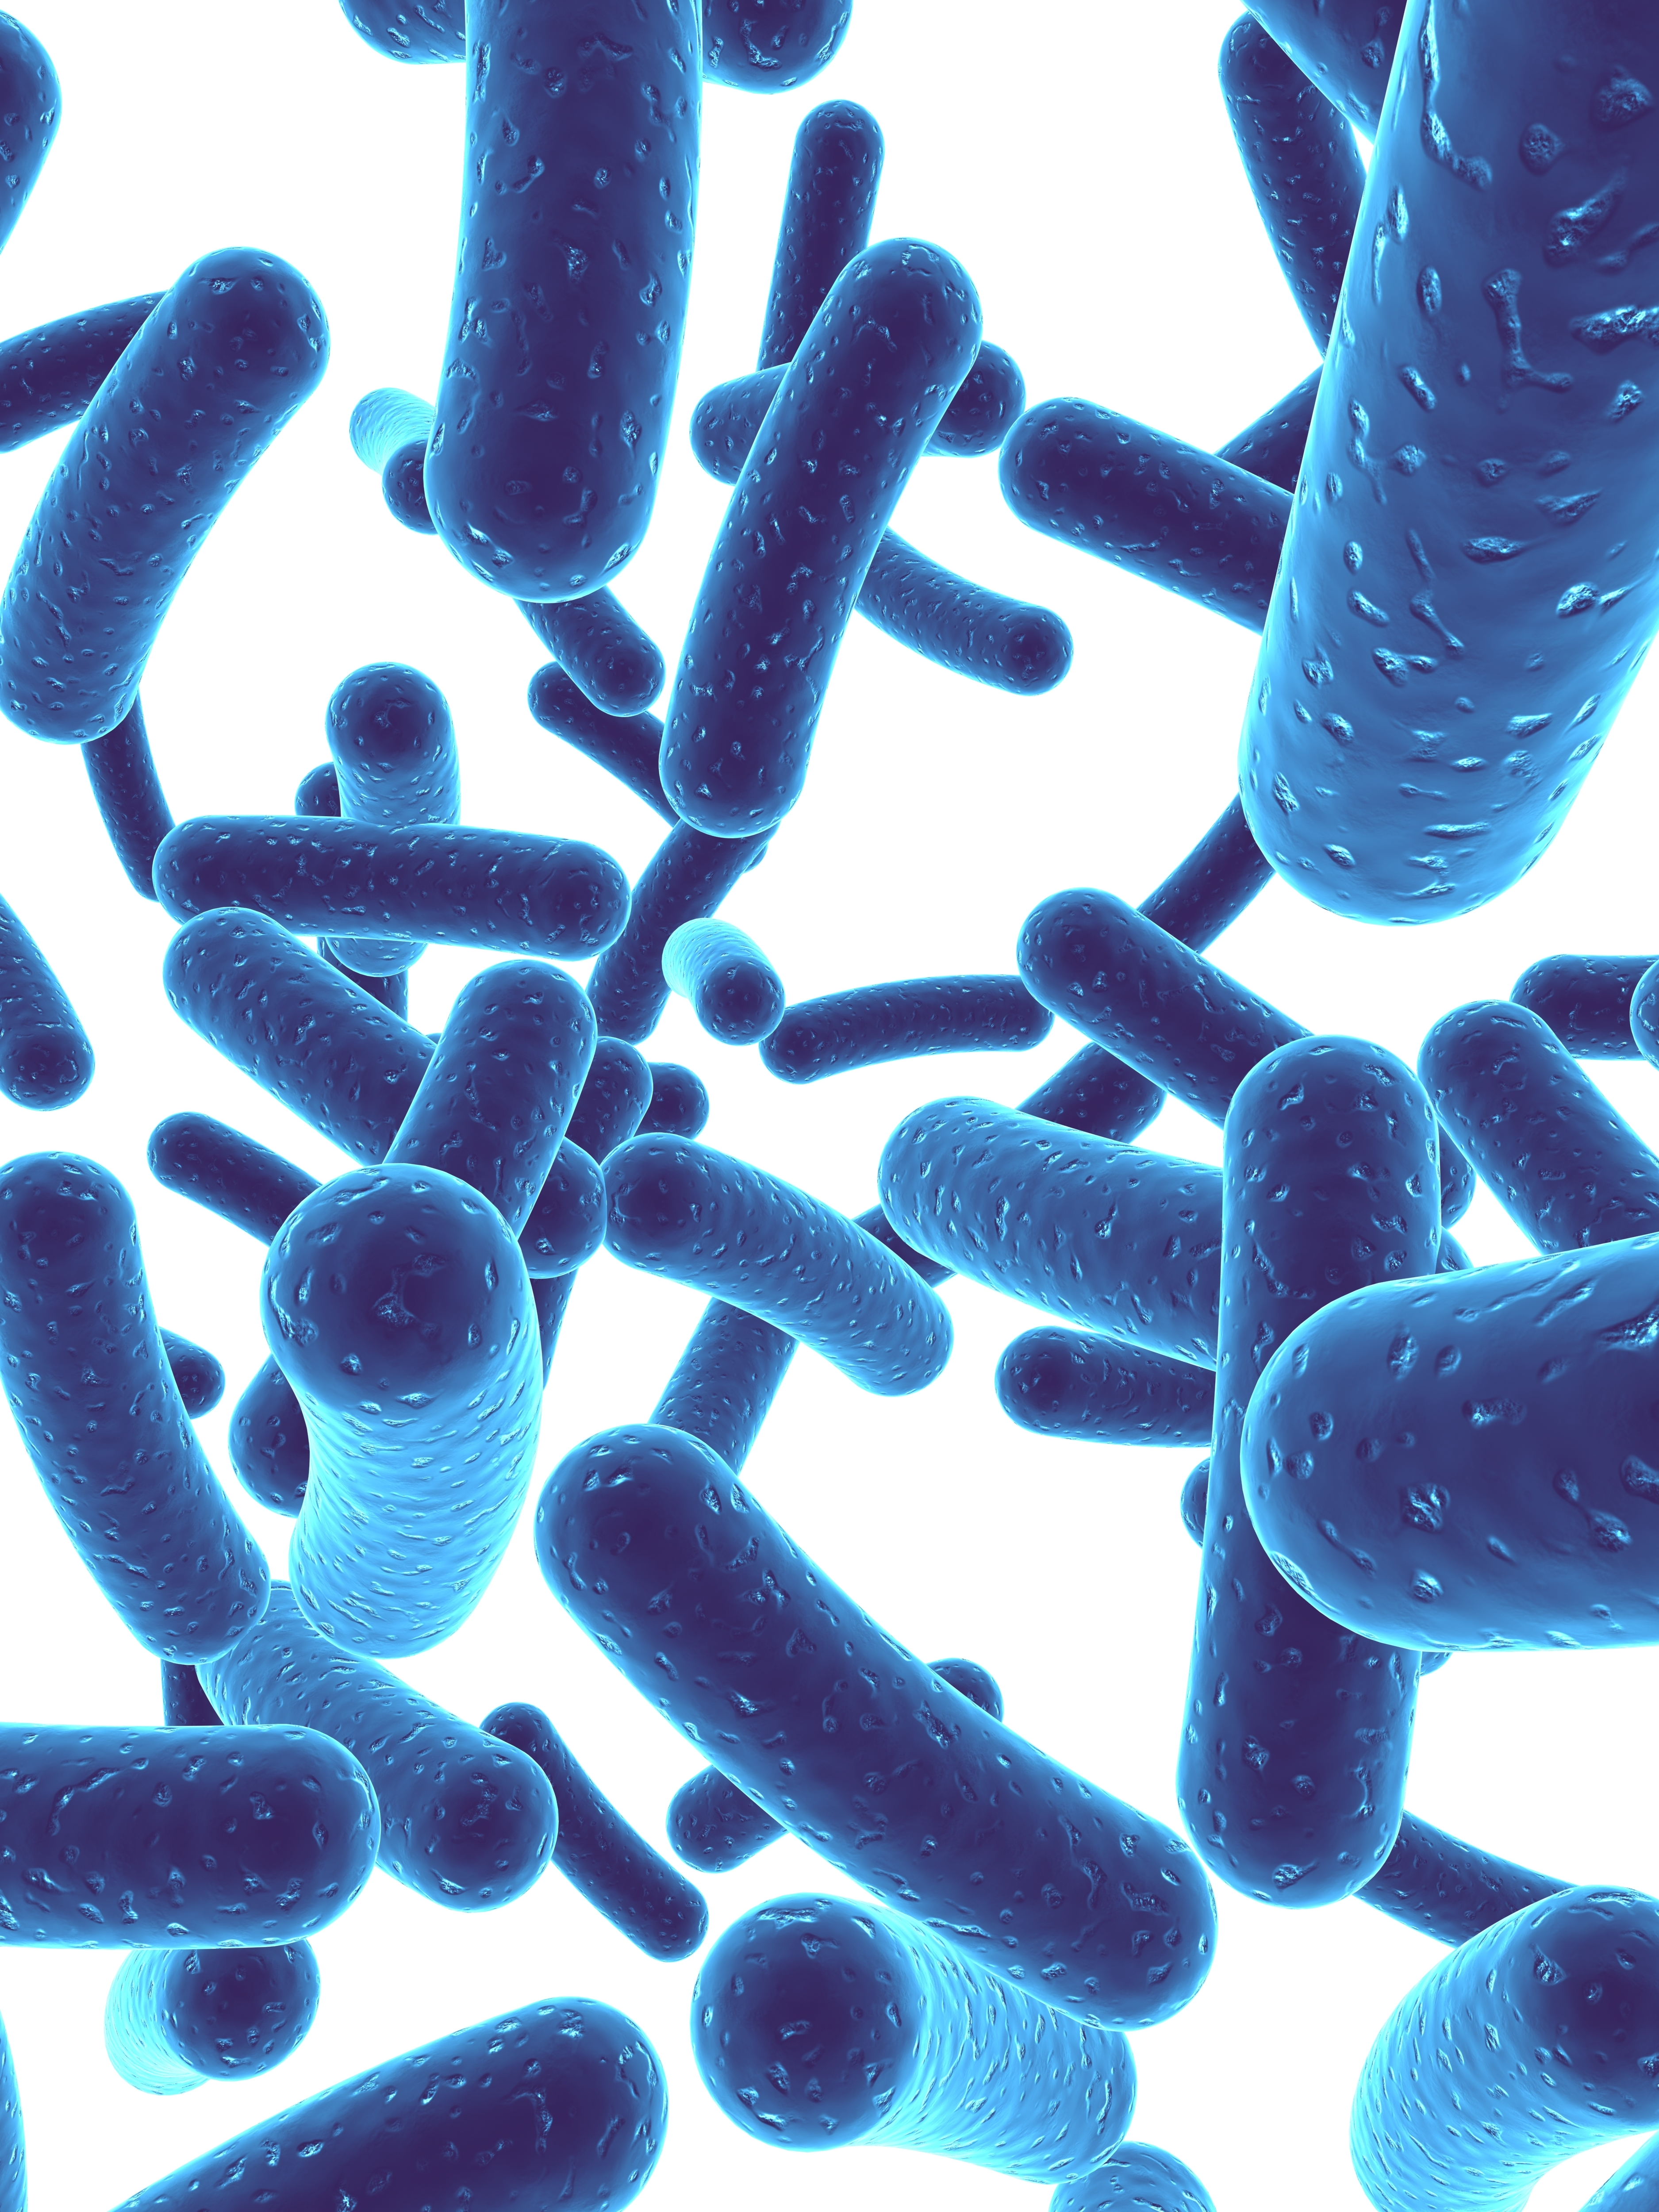 Practitioner Corner: The Importance of the Gut Microbiome in Healing